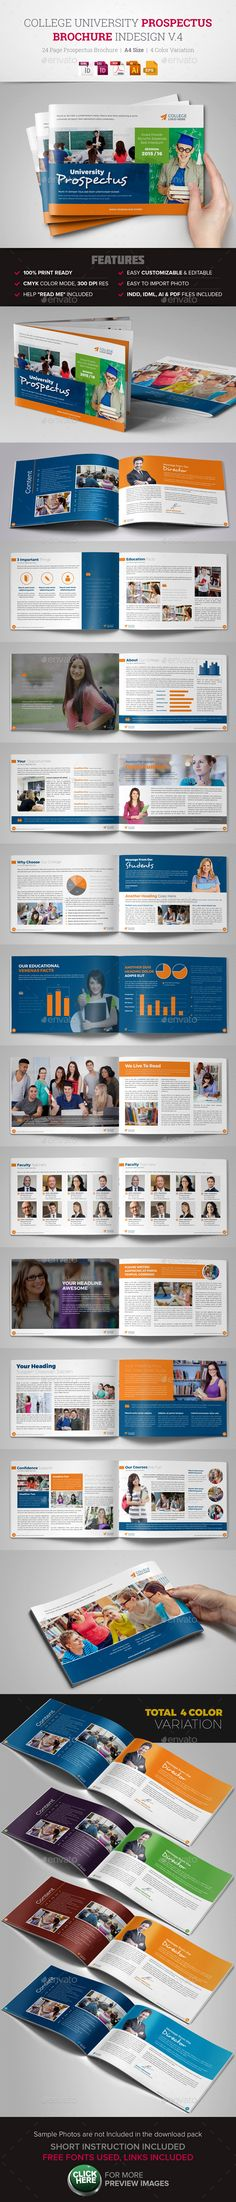 College University Prospectus Brochure V1 | Ai Illustrator